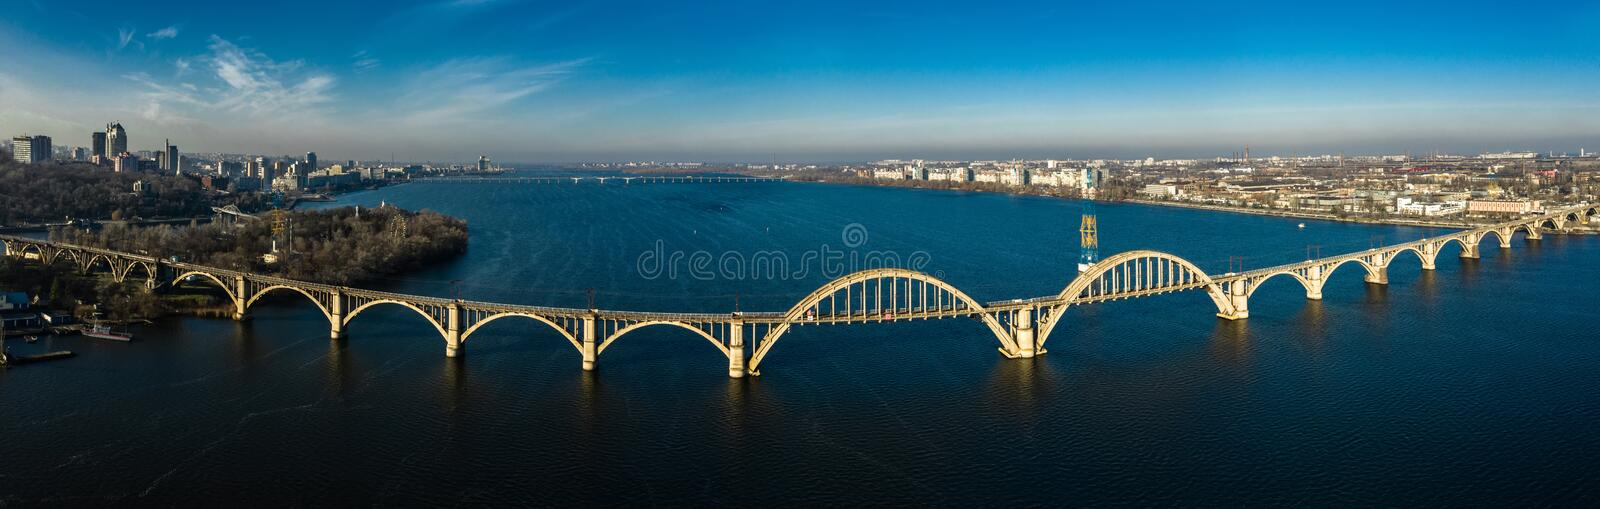 Aerial panoramic view on old arch railway Merefo-Kherson bridge across the Dnieper river in Dnepropetrovsk, Ukraine.  royalty free stock photography